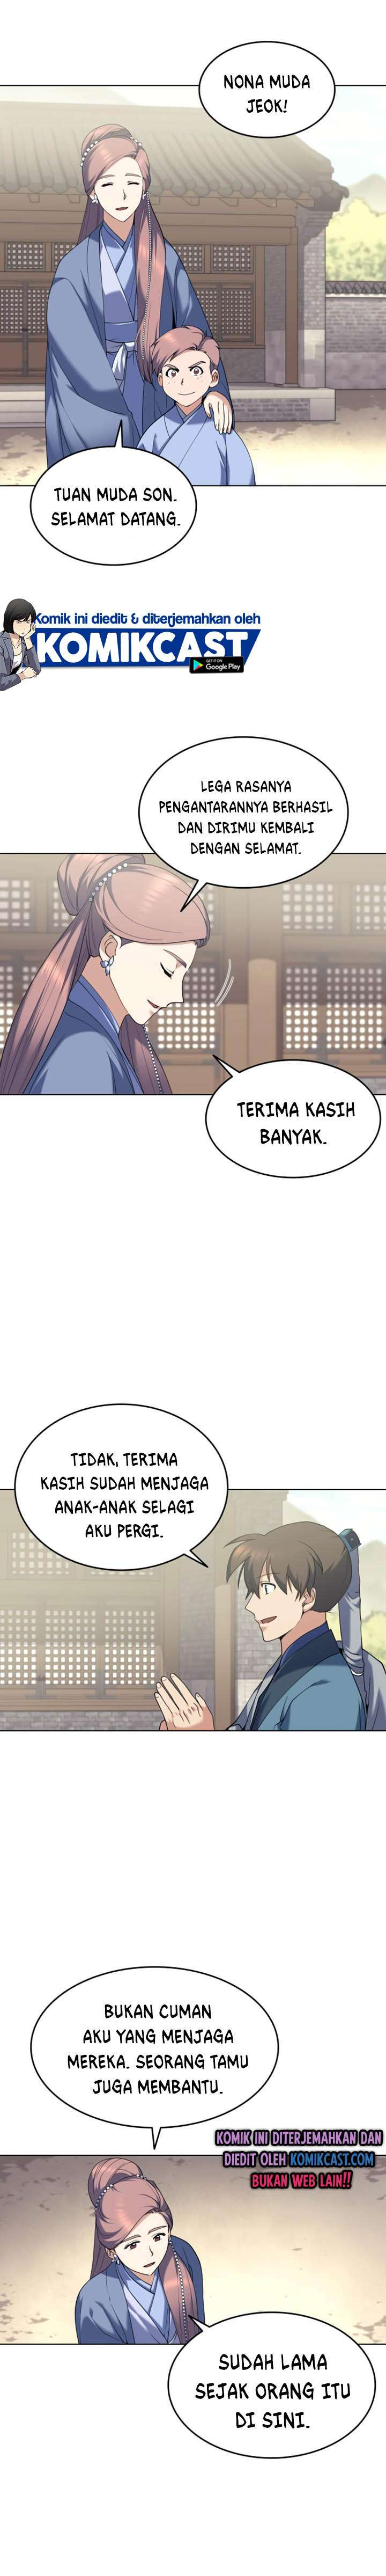 Tale of a Scribe Who Retires to the Countryside Chapter 53 Bahasa Indonesia page 29